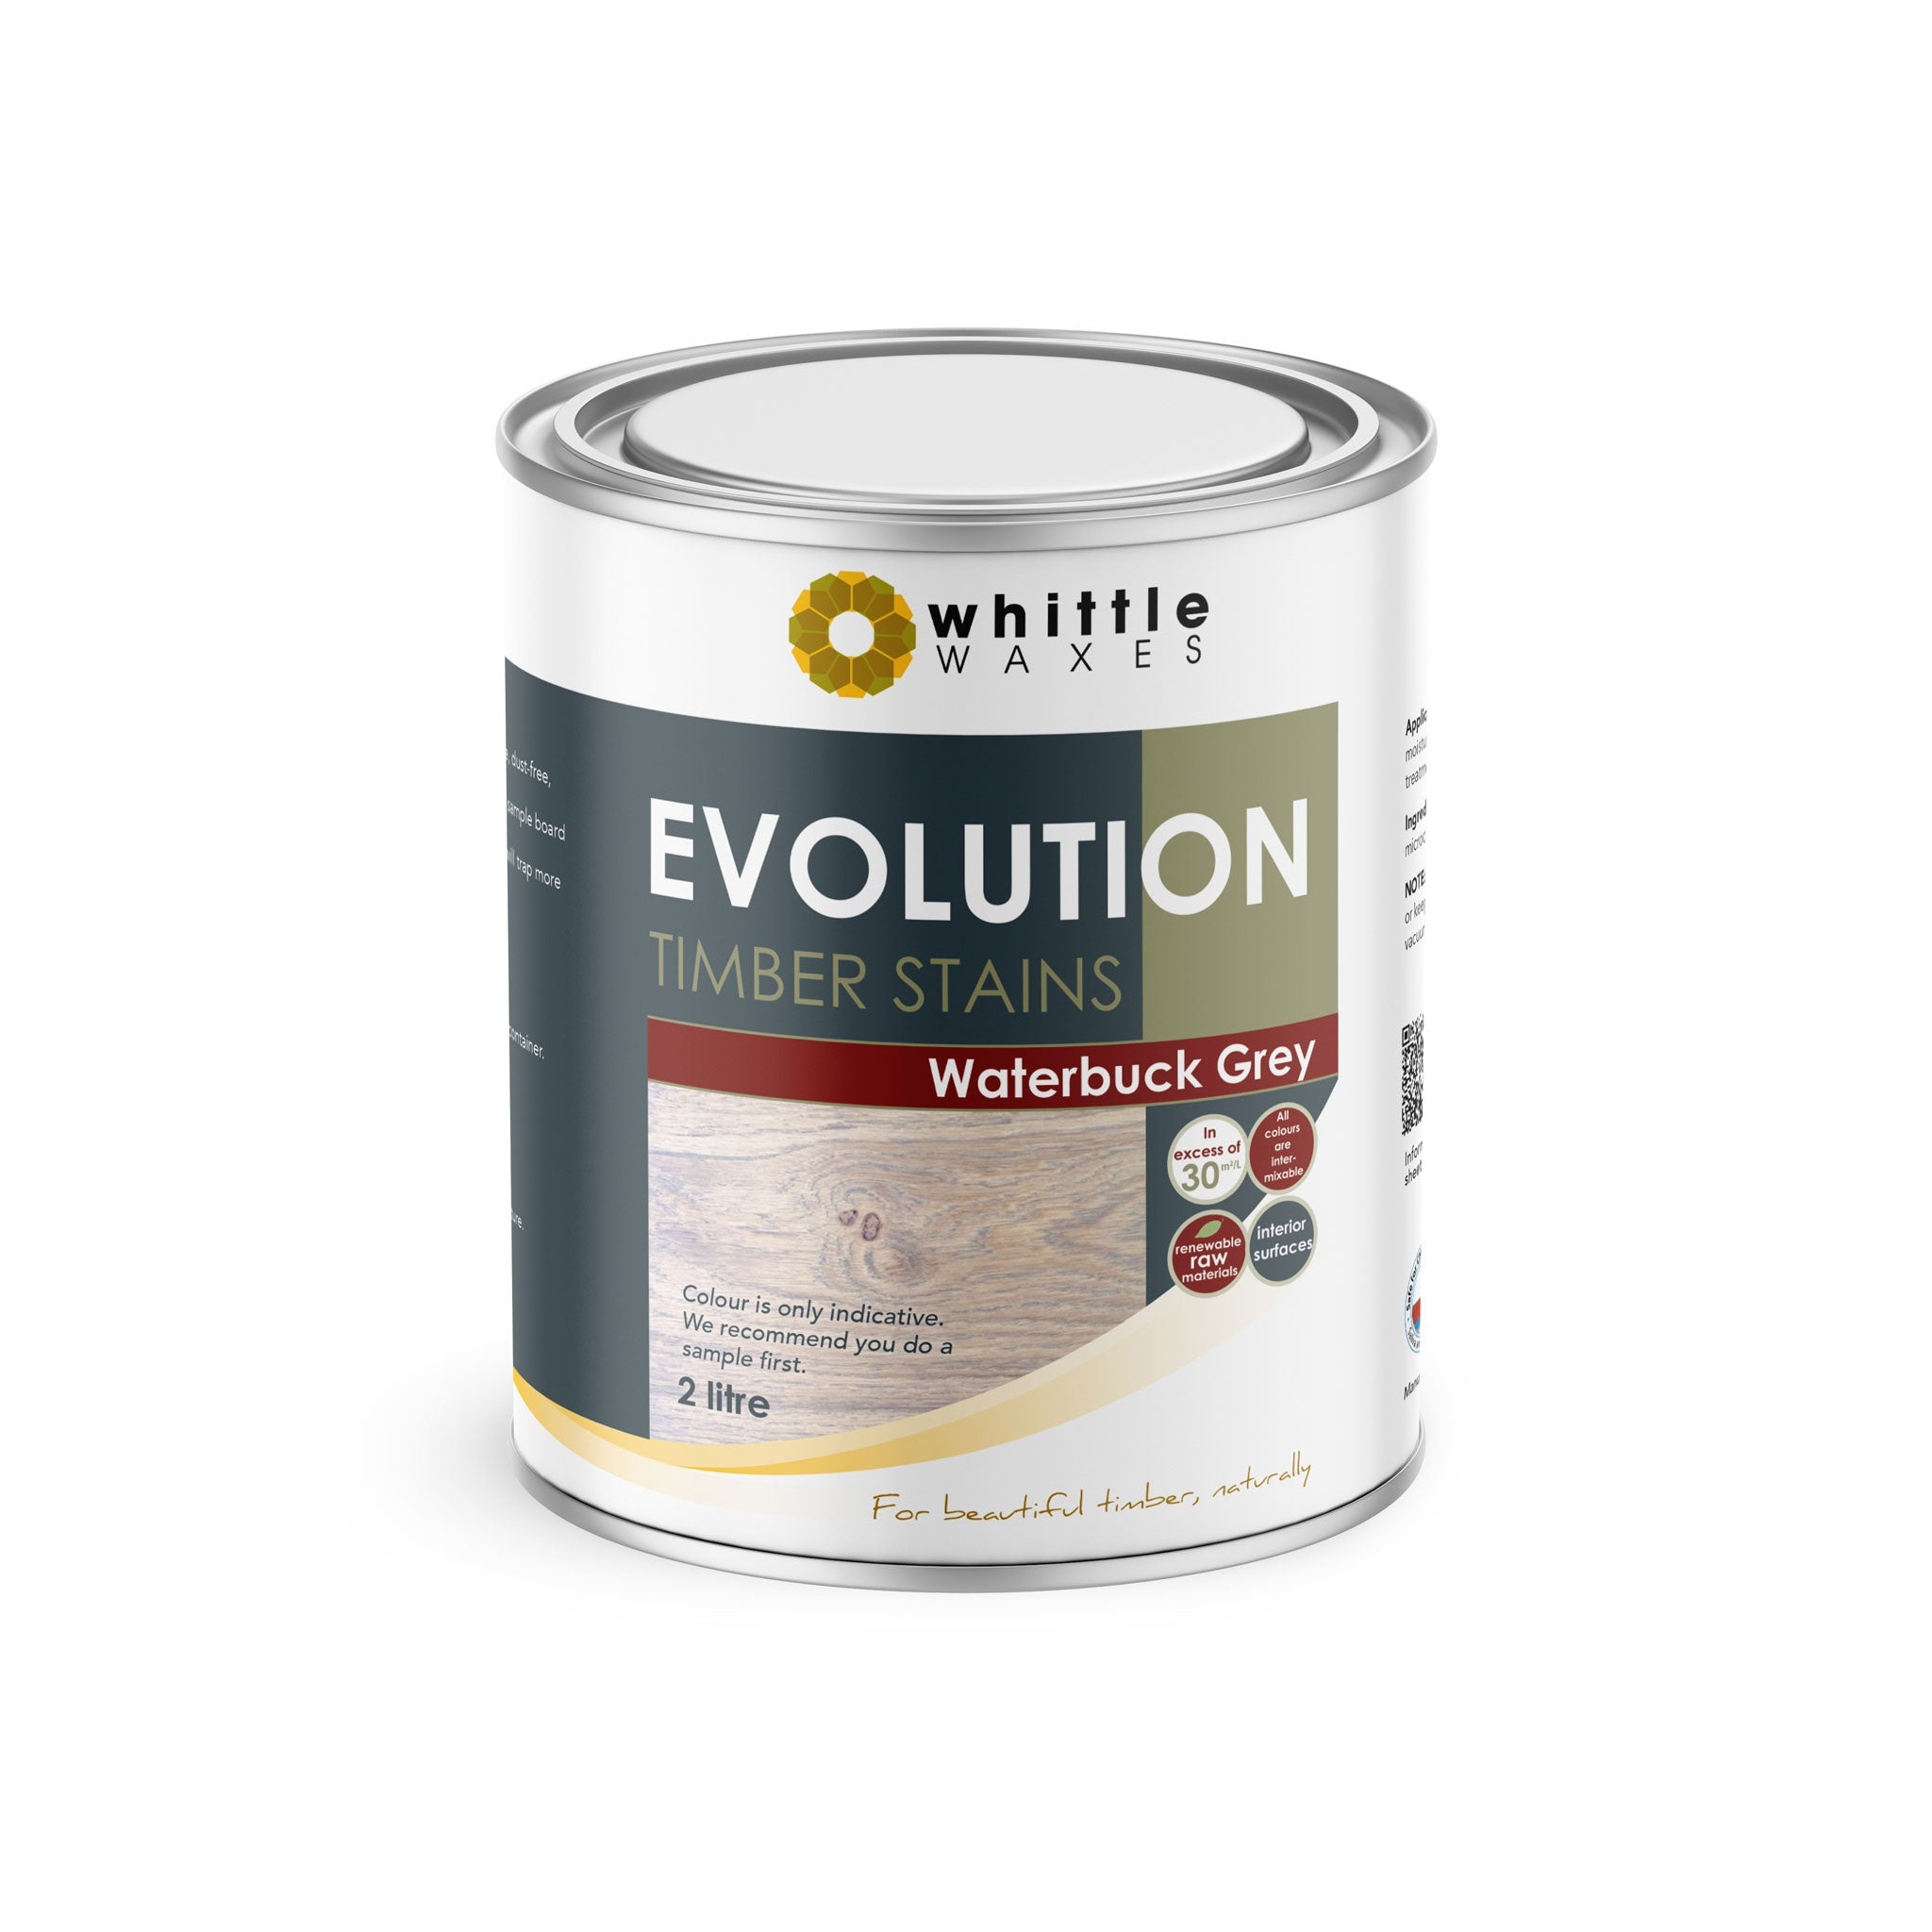 Whittle Waxes Evolution Colours (Waterbuck Grey) - quality timber stain - 2 Litre